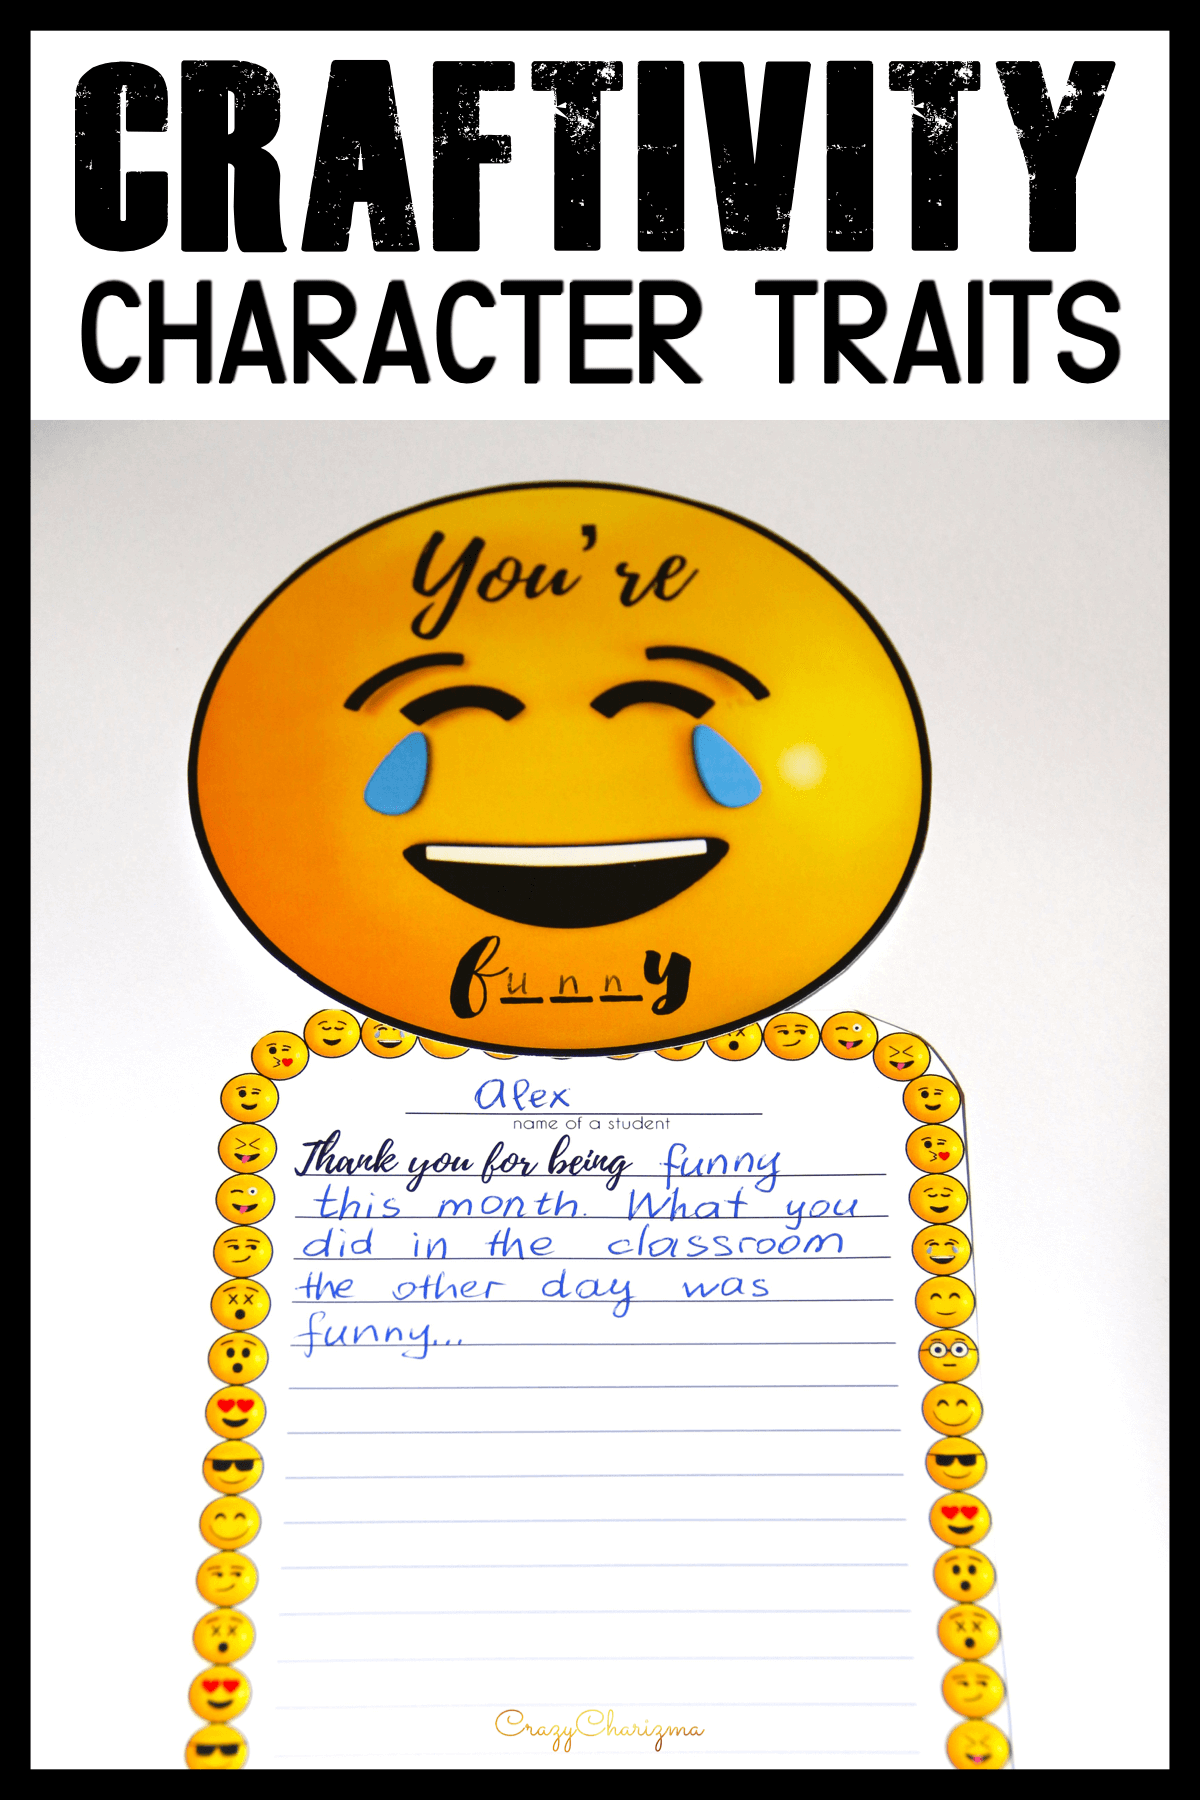 Teach positive character traits with these activities which include emojis craftivity. The main idea is to characterize classmates (compliments activity) and practice writing. Build kindness and rapport in your classroom!